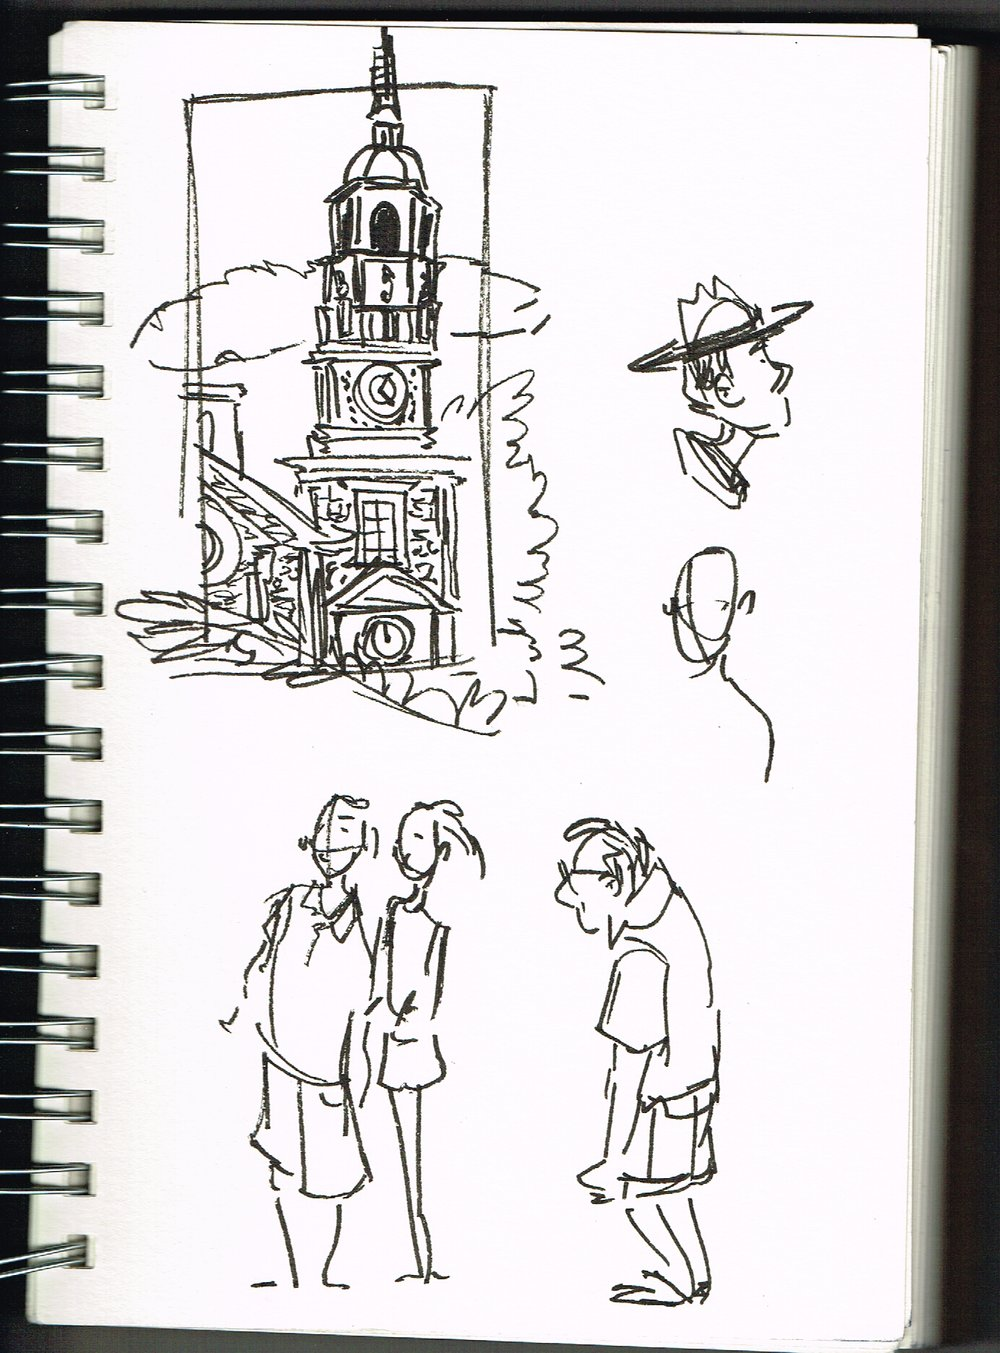 vacation_sketchbook_022.jpg